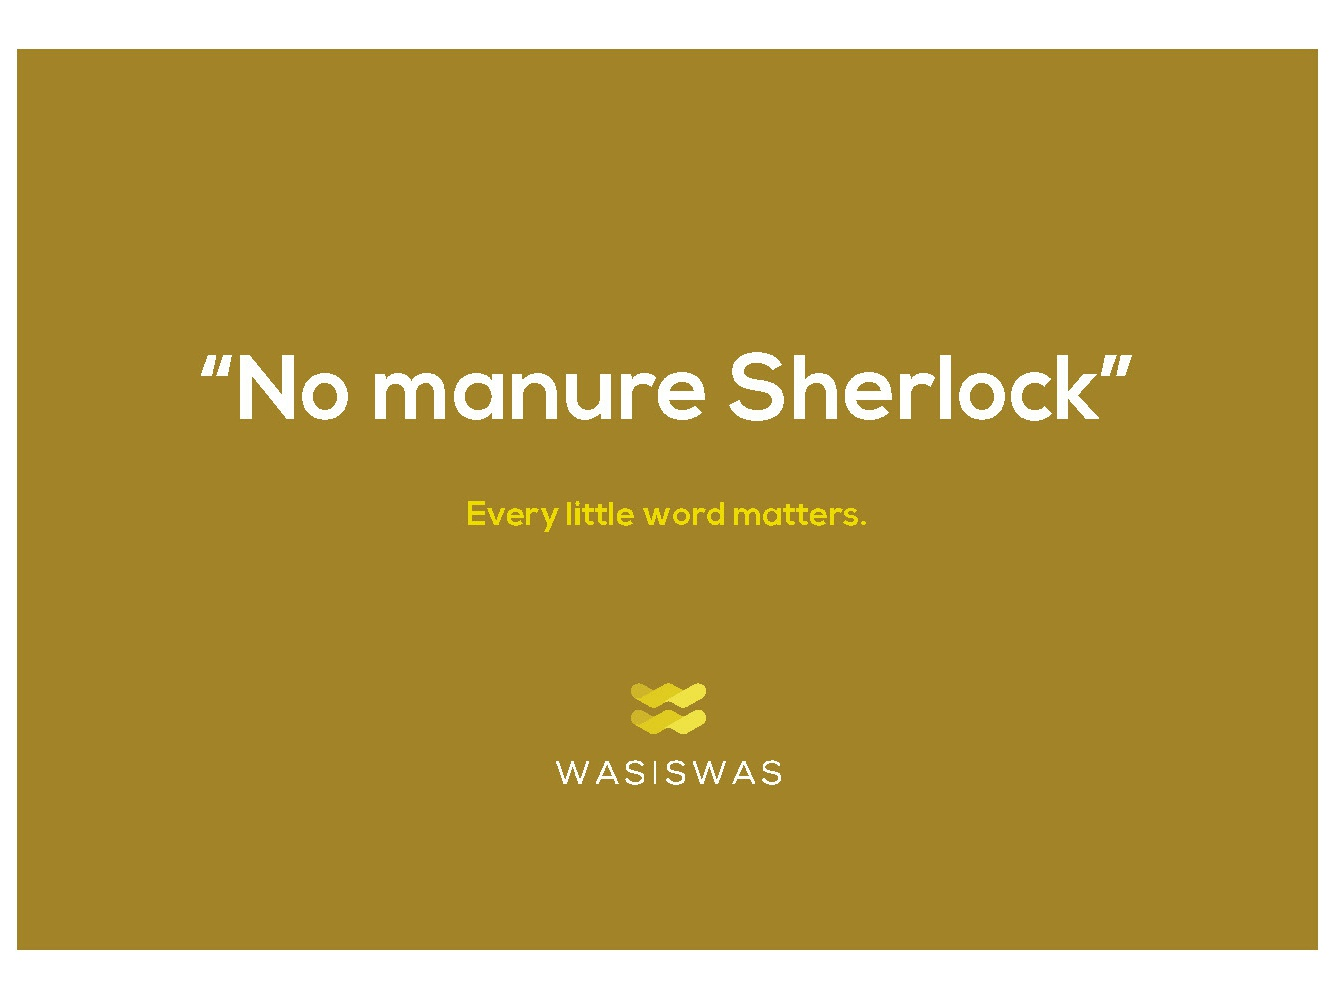 No Manure Sherlock Postcard copywriter postcard mustard wasiswas hawaii writer idioms sayings words